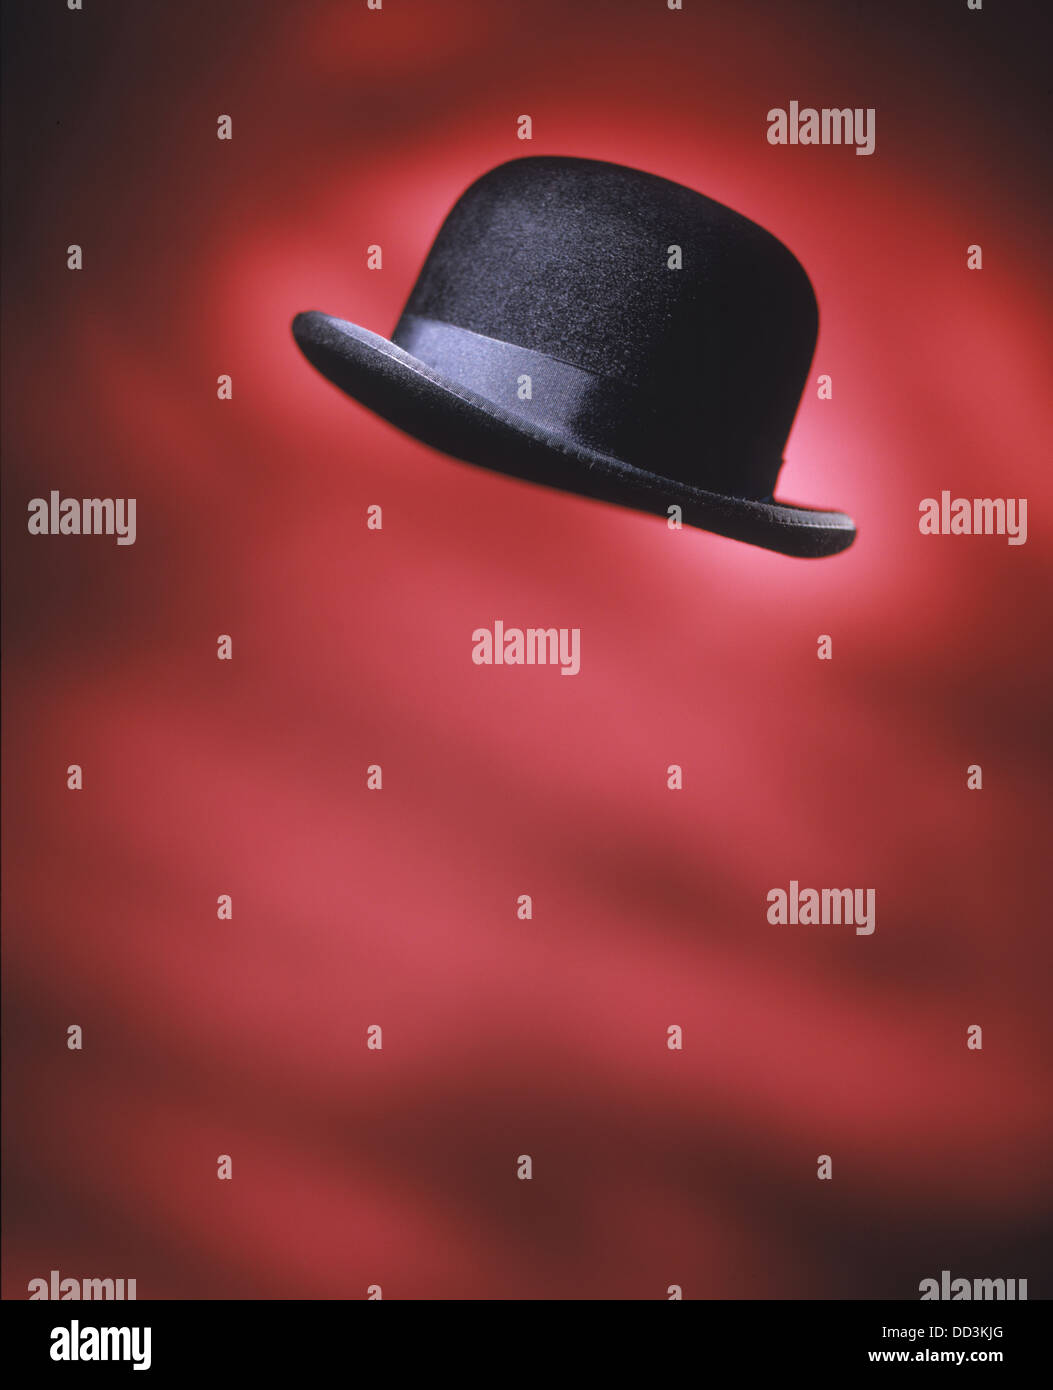 A black mens derby hat flying in the air. Bright red background - Stock Image